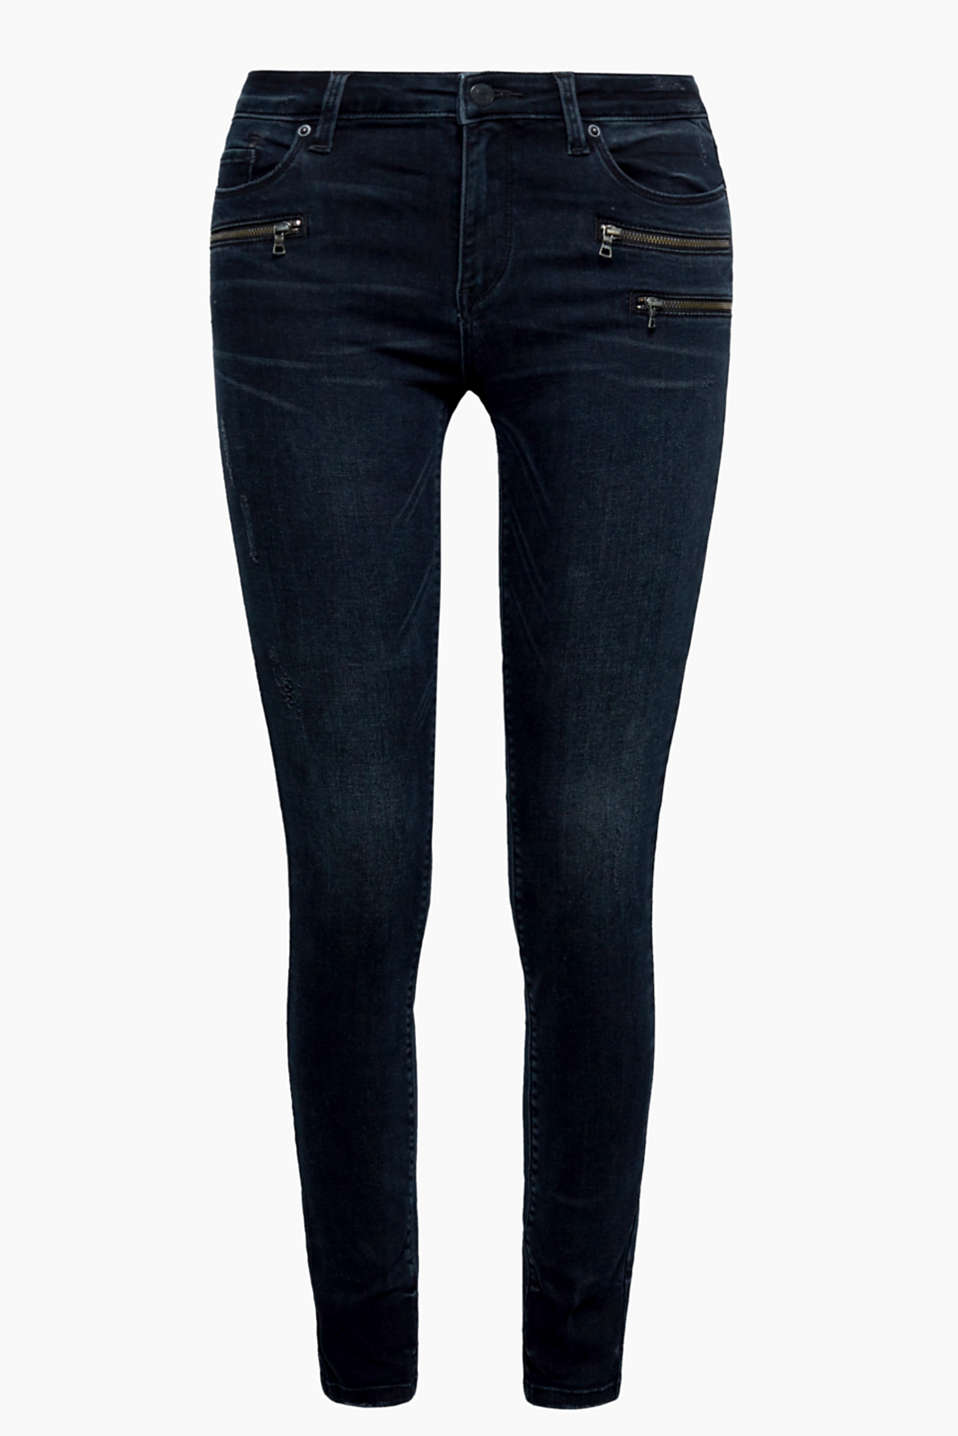 These jeans with heavy vintage effects, decorative zips and a high percentage of stretch guarantee a very cool look!